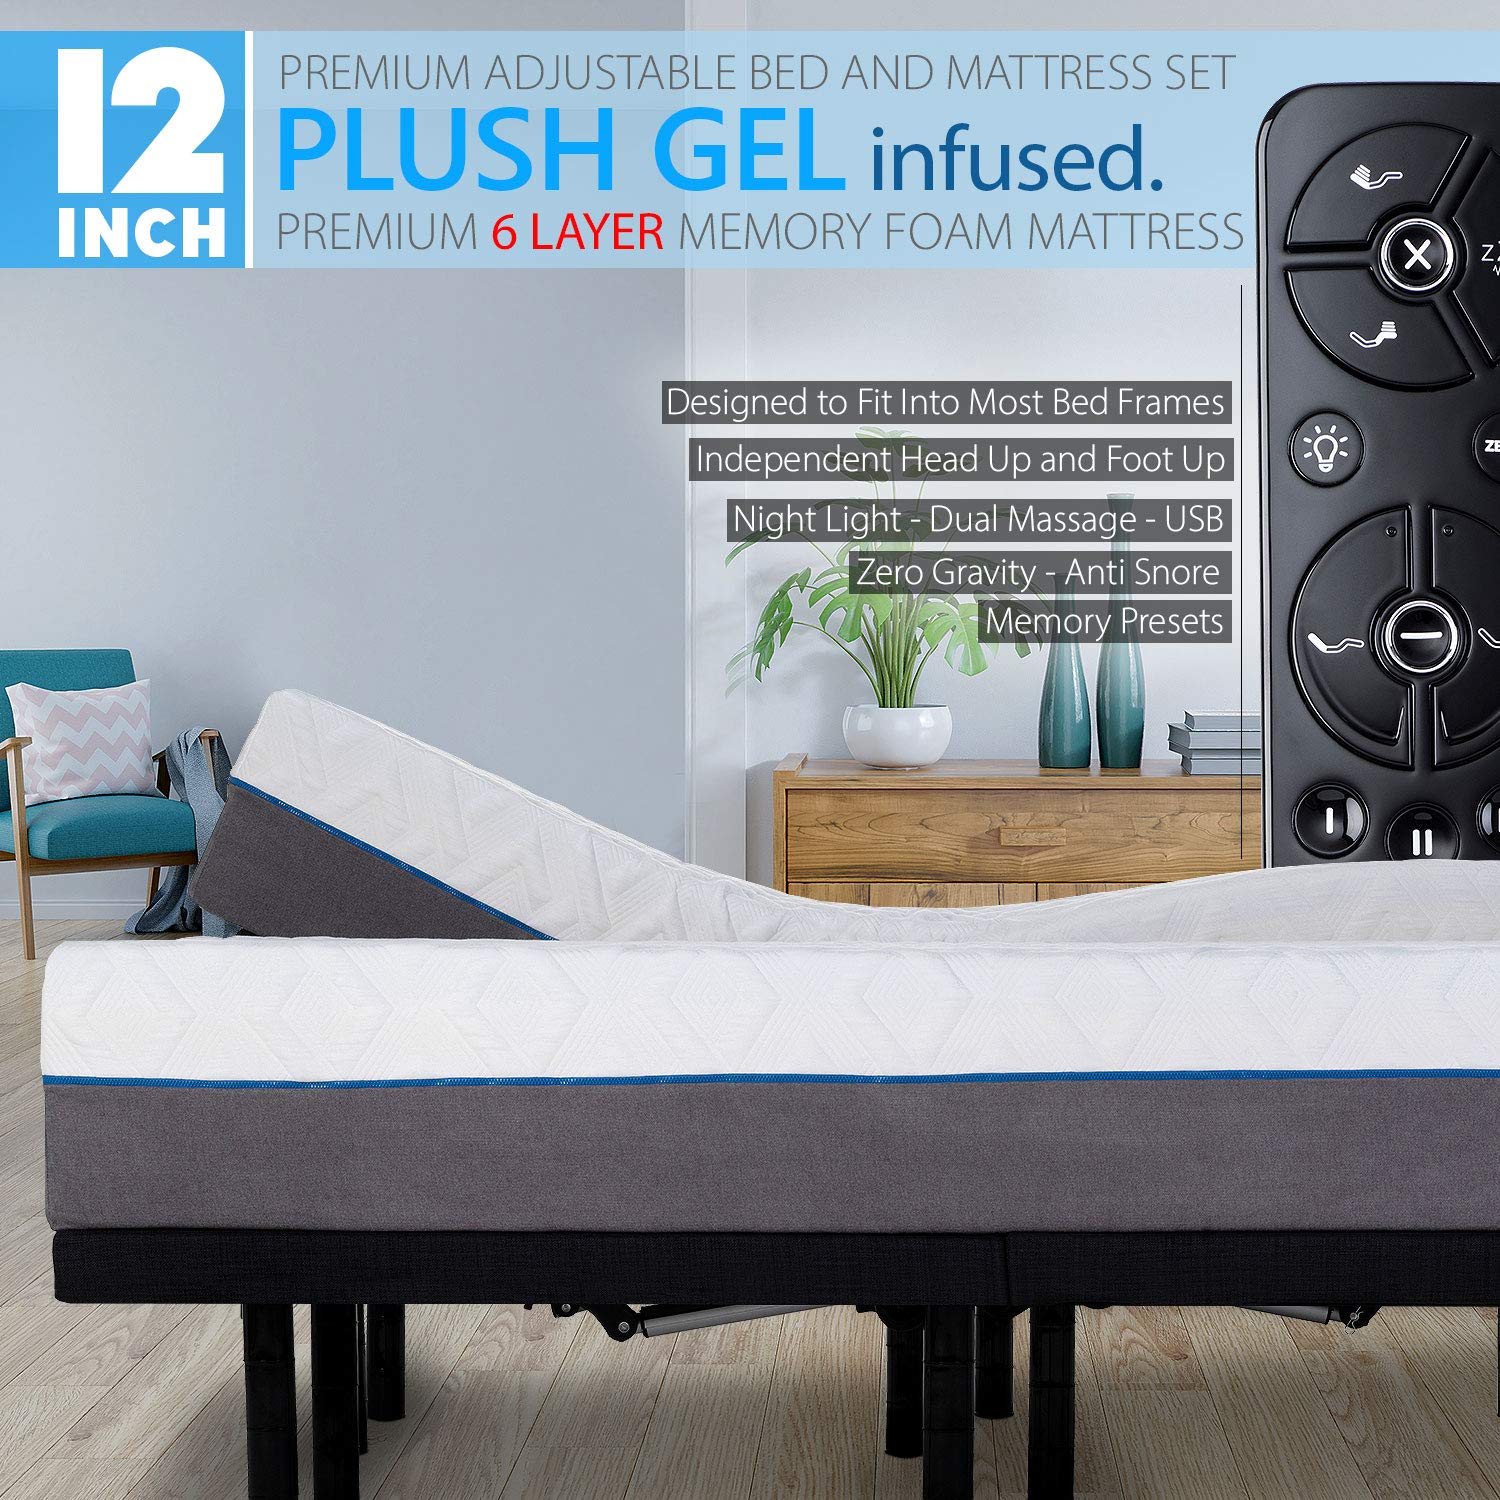 12'' Split King Cool Gel Infused Plush Memory Foam Mattress with Premium Adjustable Bed Frame Combo, Massage, USB, Zero Gravity,Anti-Snore, Nightlight (King Split) by Blissful Nights